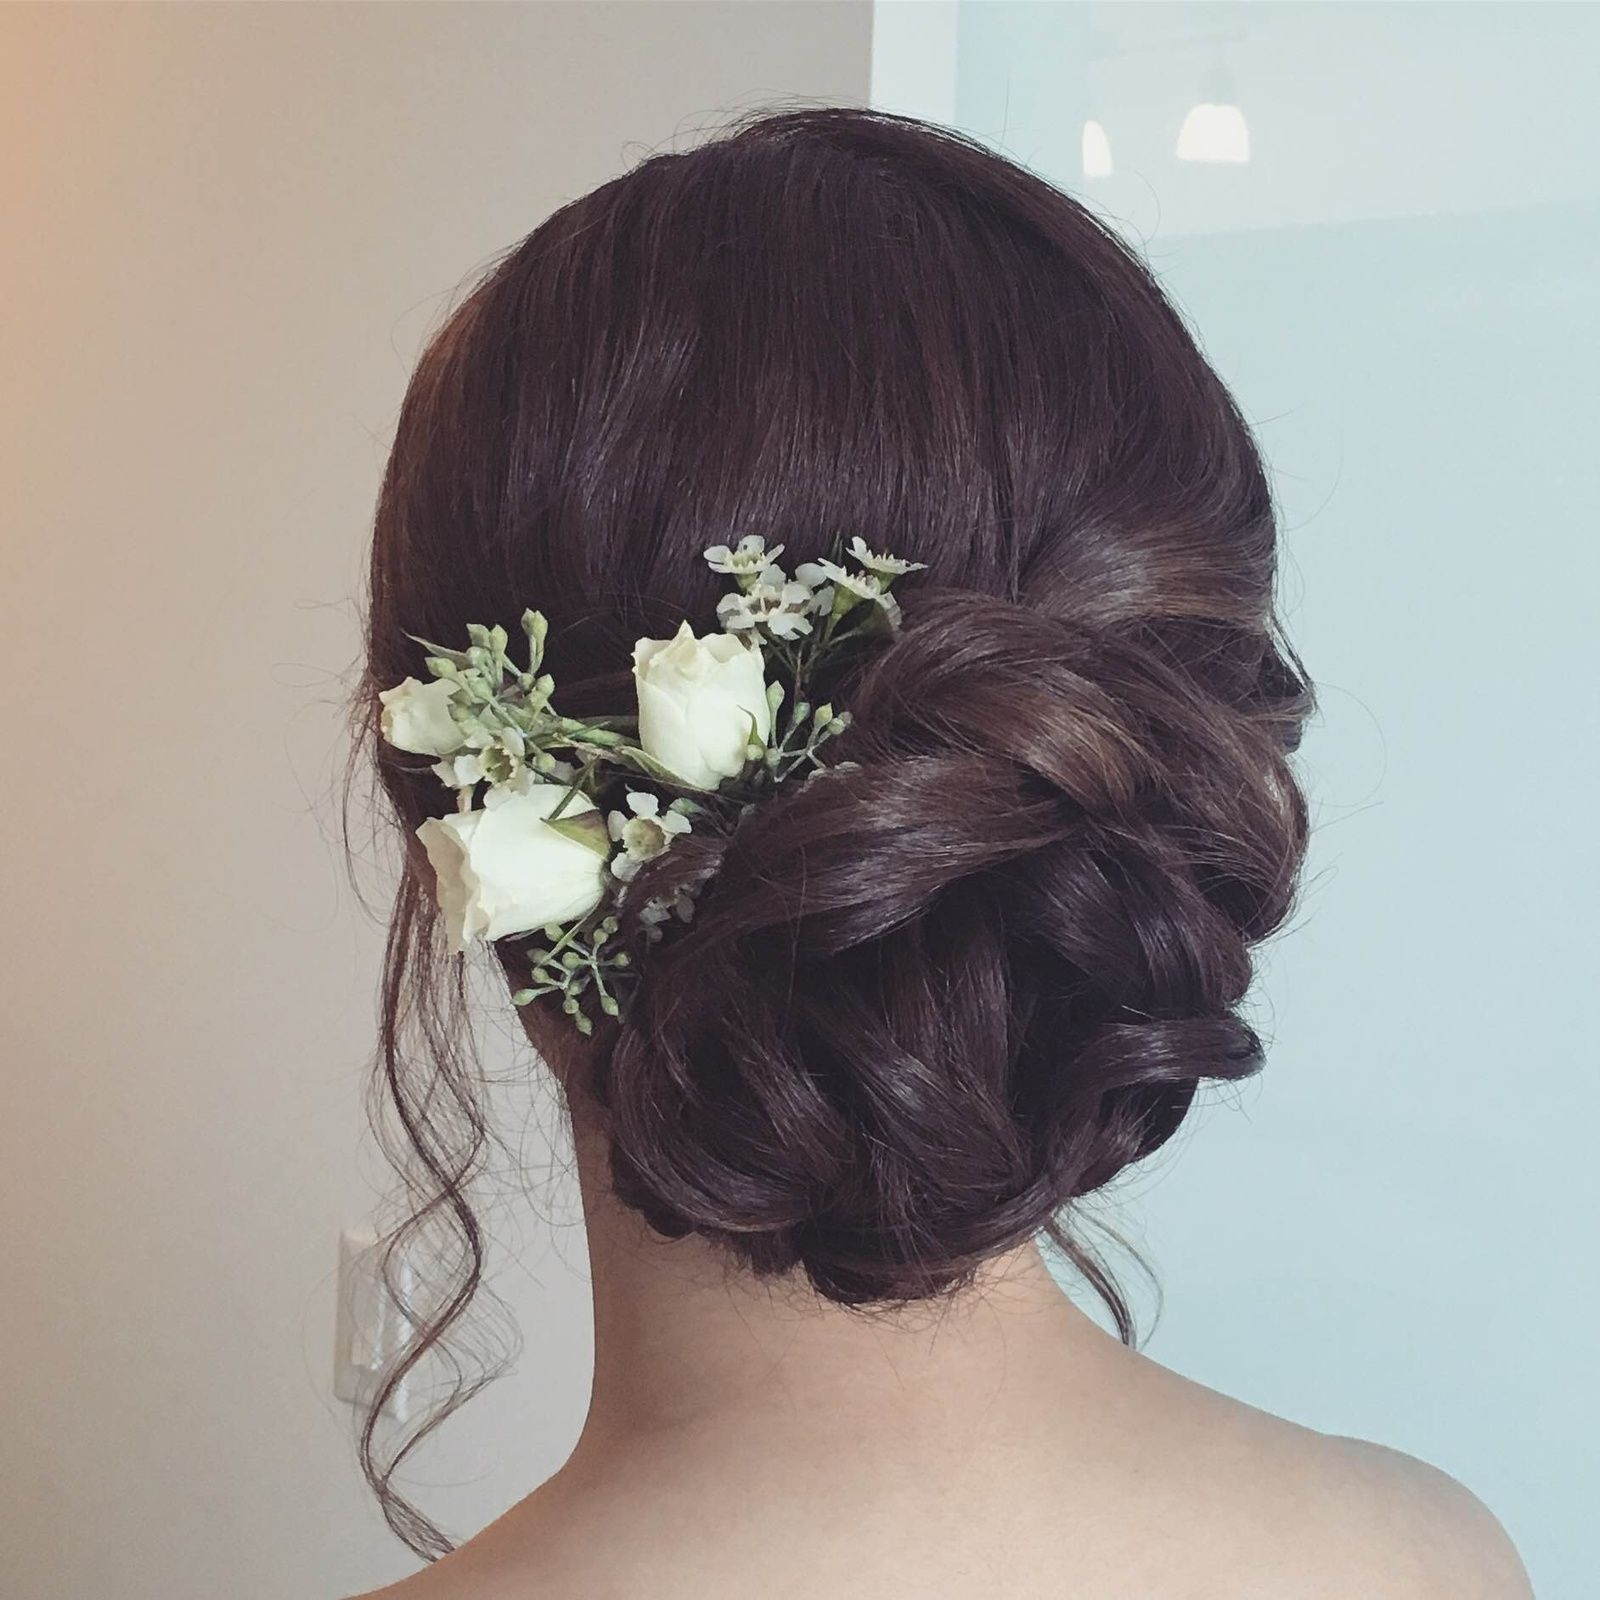 UnojoBridalhair Gallery (With images) Freelance